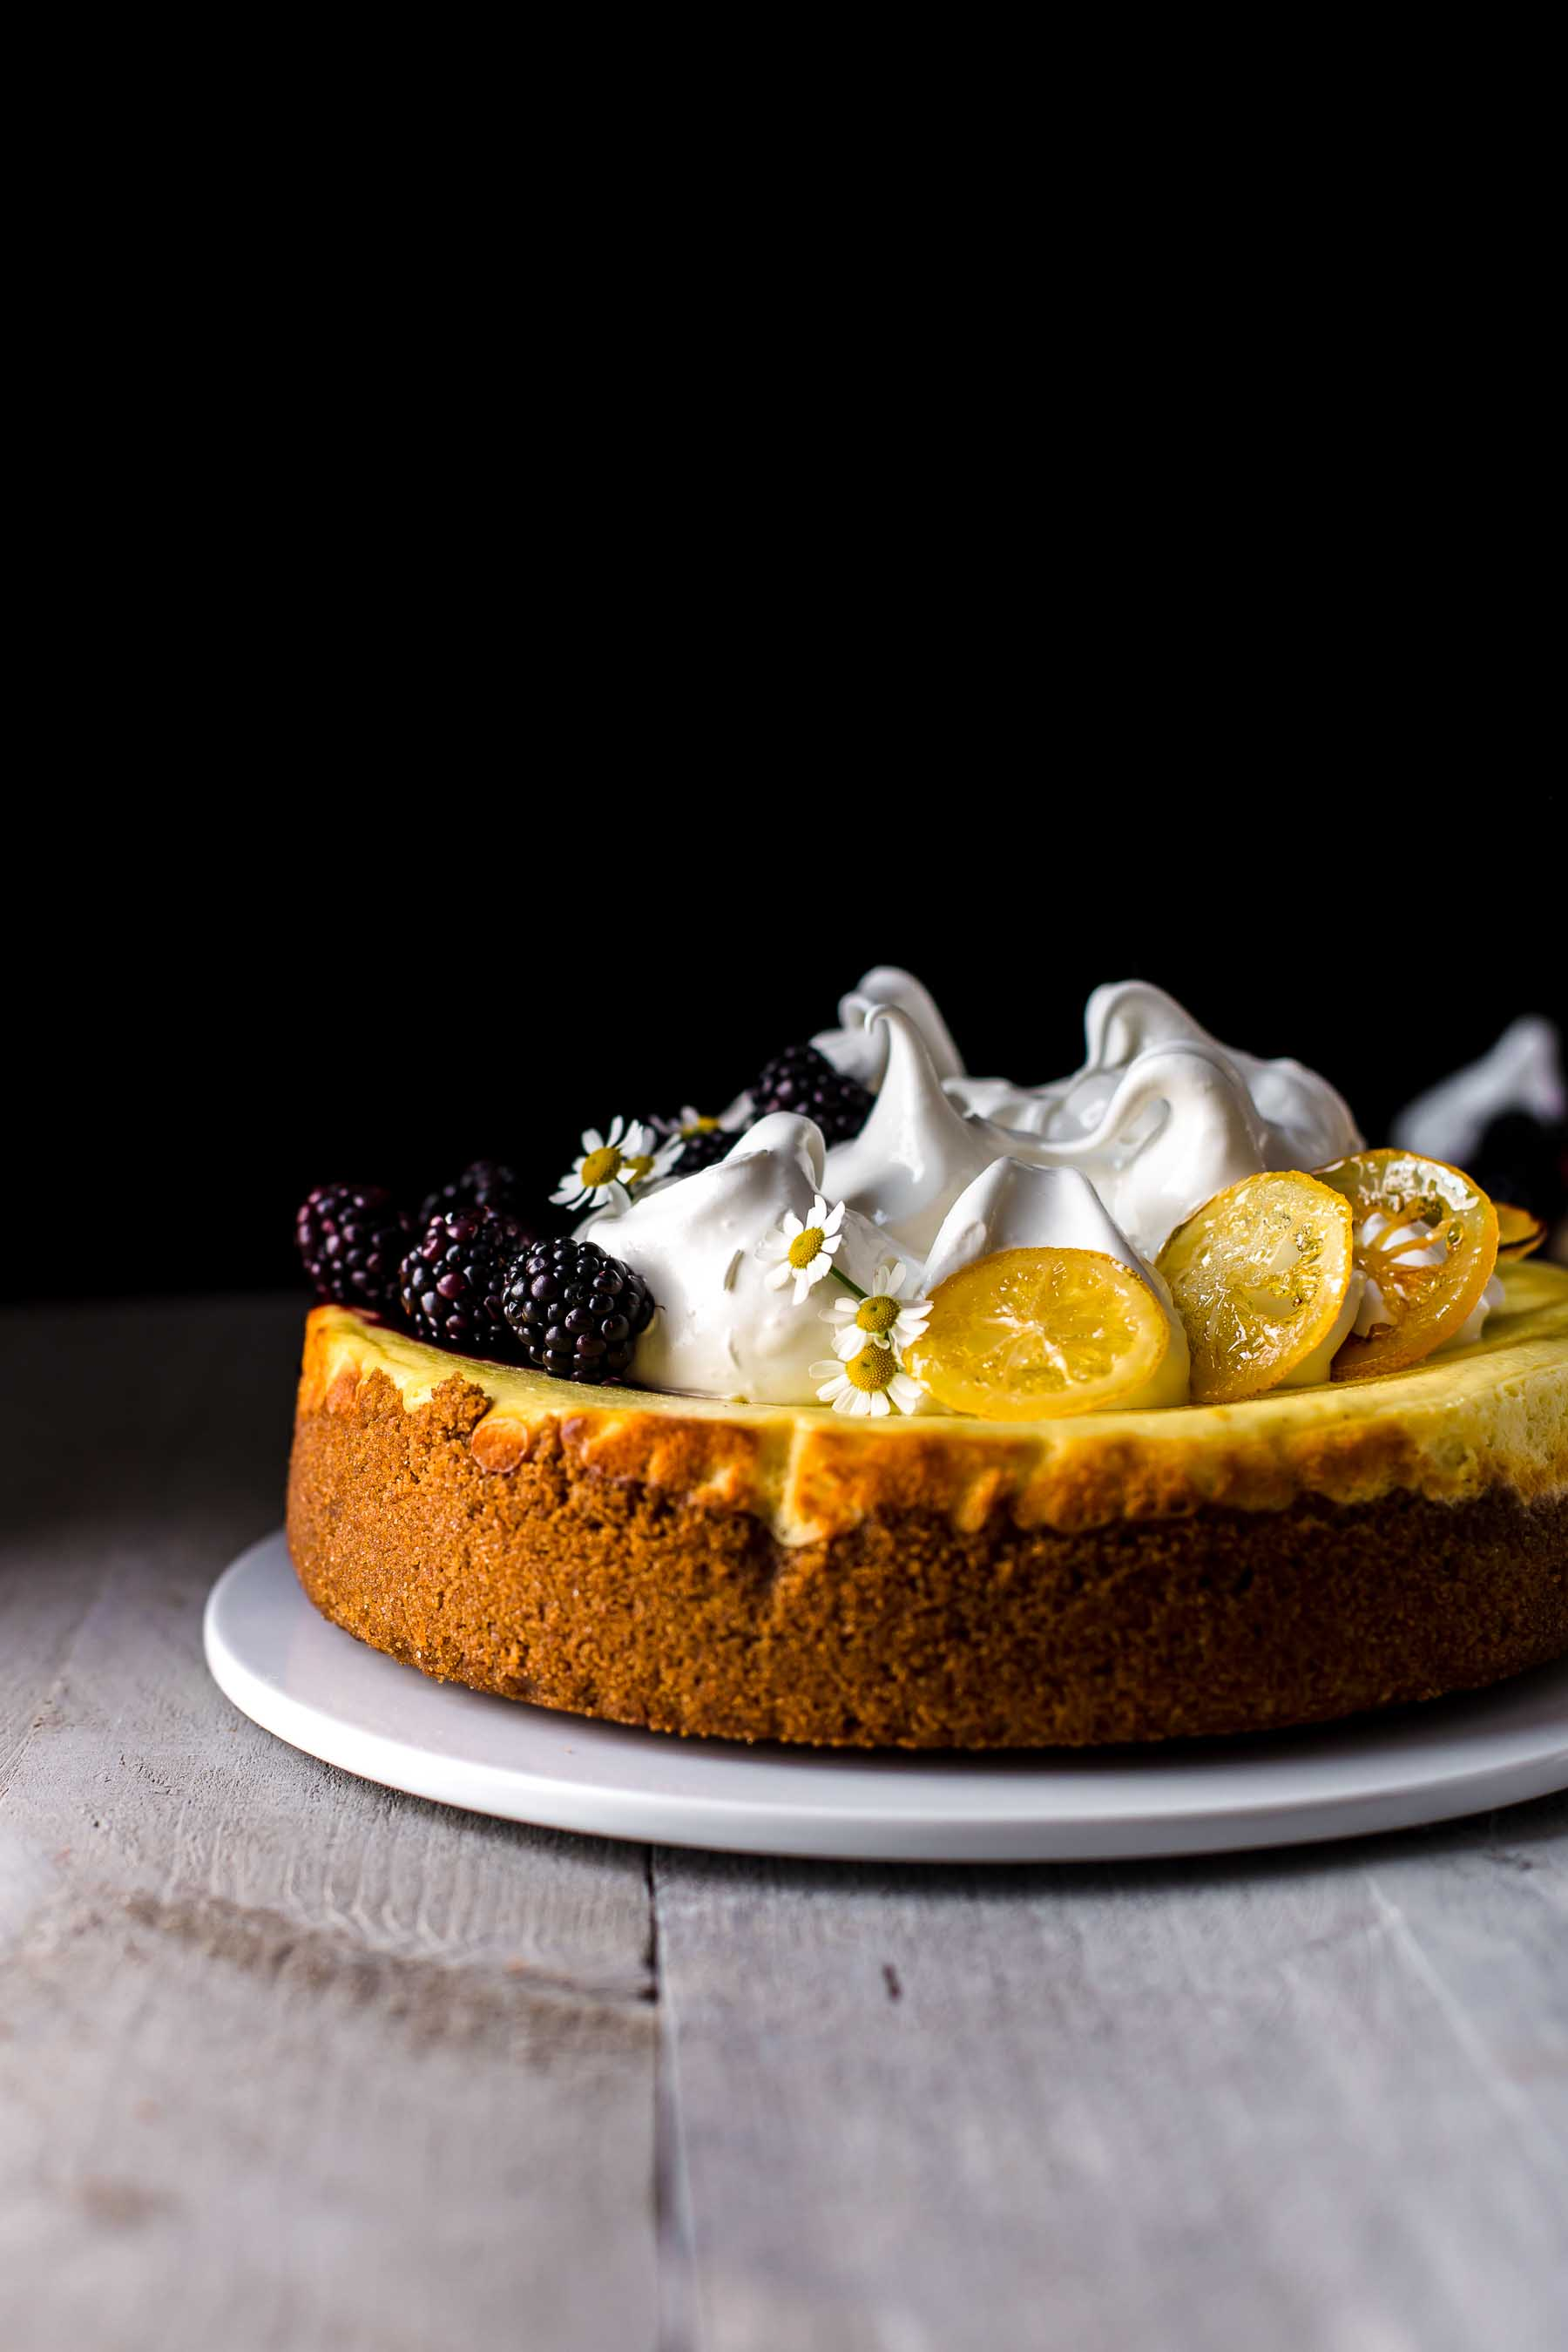 Baked and decorated Lemon Cheesecake on serving plate